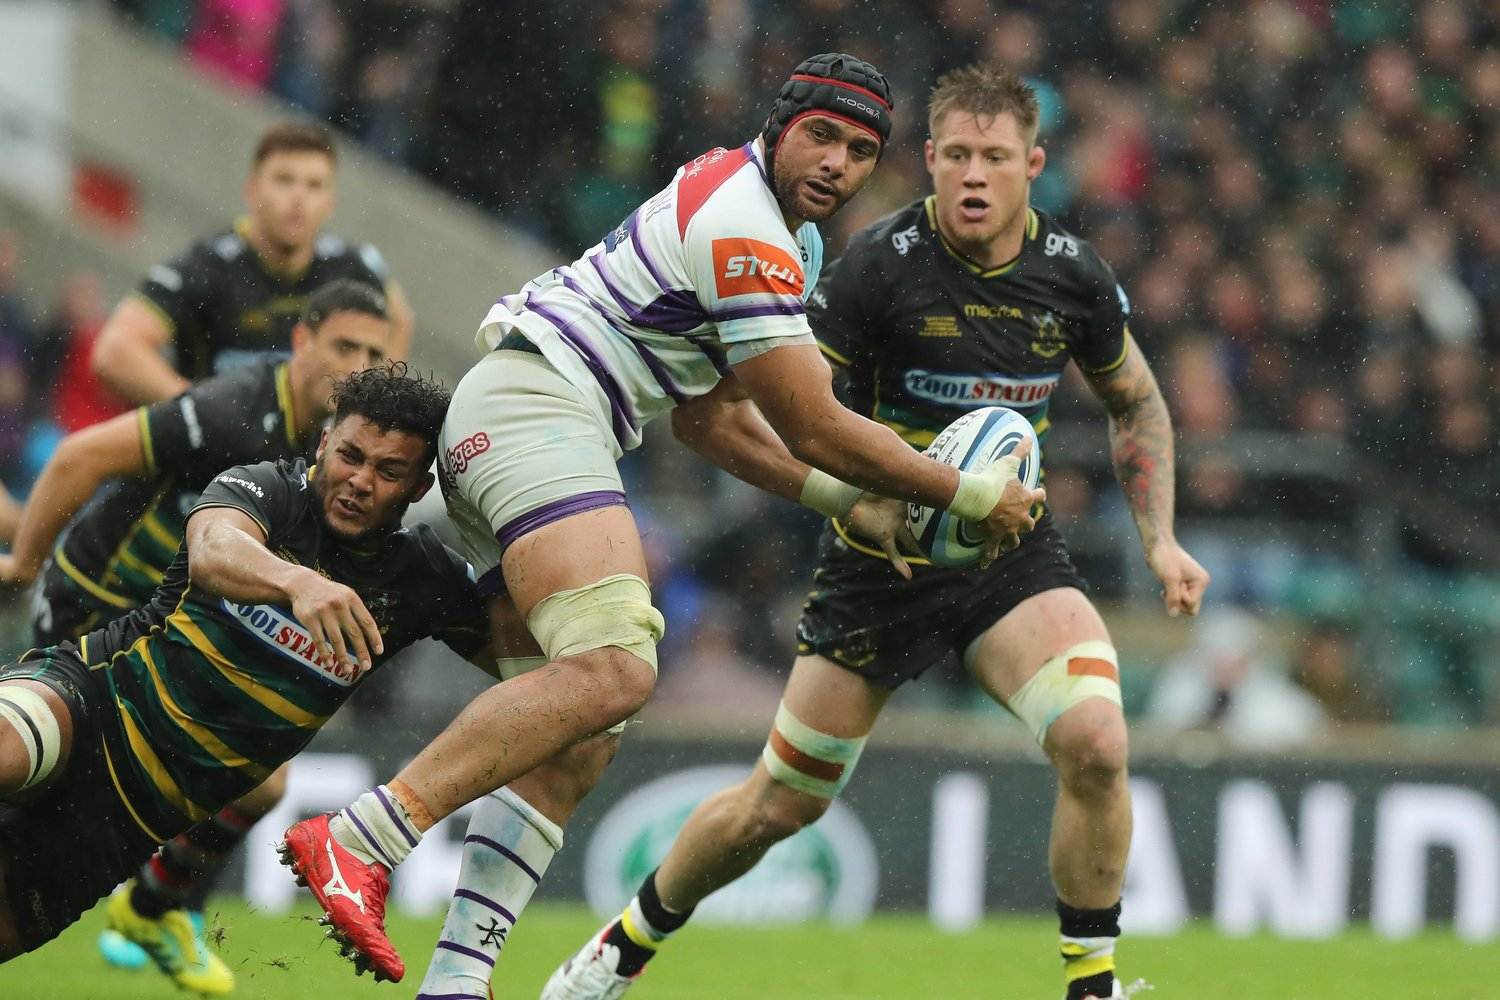 Sione Kalamafoni plays against Saints at Twickenham in support of former Saint Rob Horne